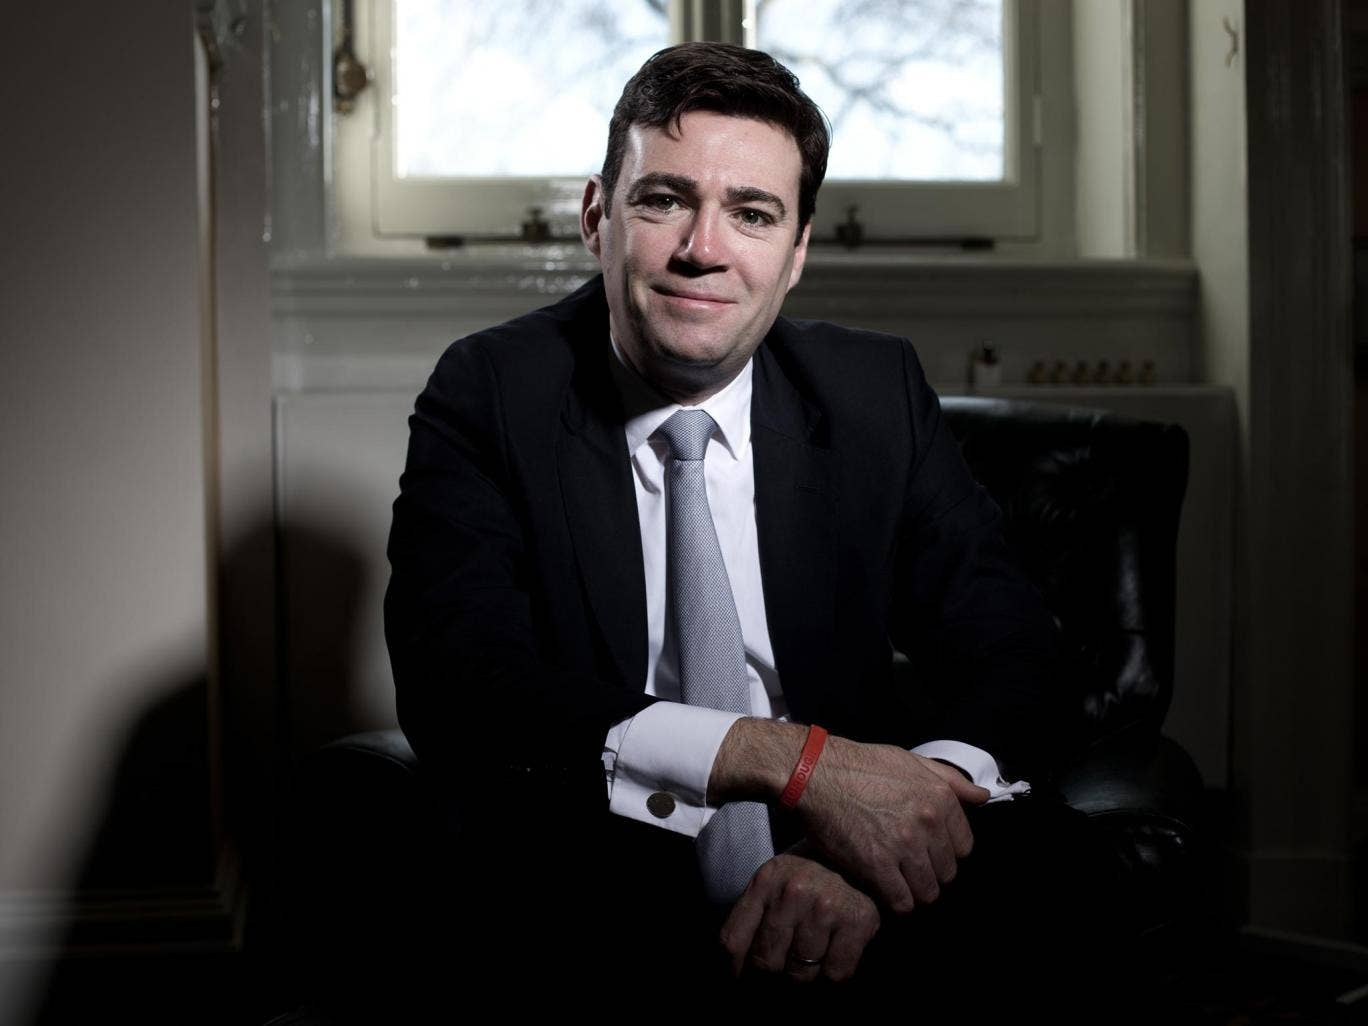 Shadow Health Secretary Andy Burnham NHS proposals have been vetoed by Labour leader Ed Miliband